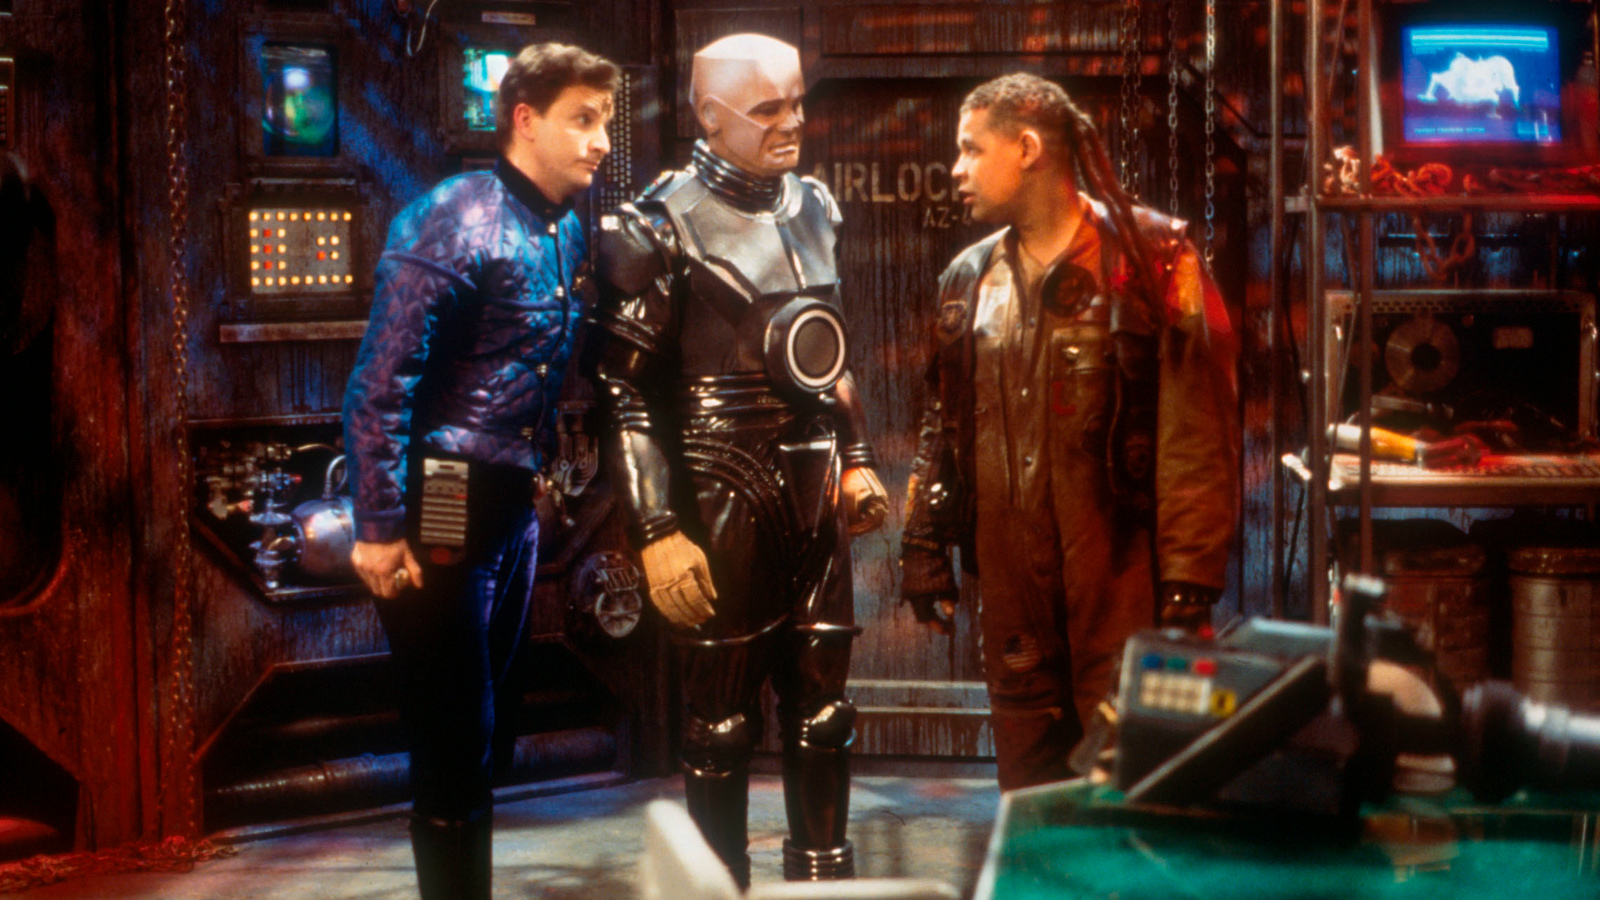 Lister Red Dwarf Quotes. QuotesGram